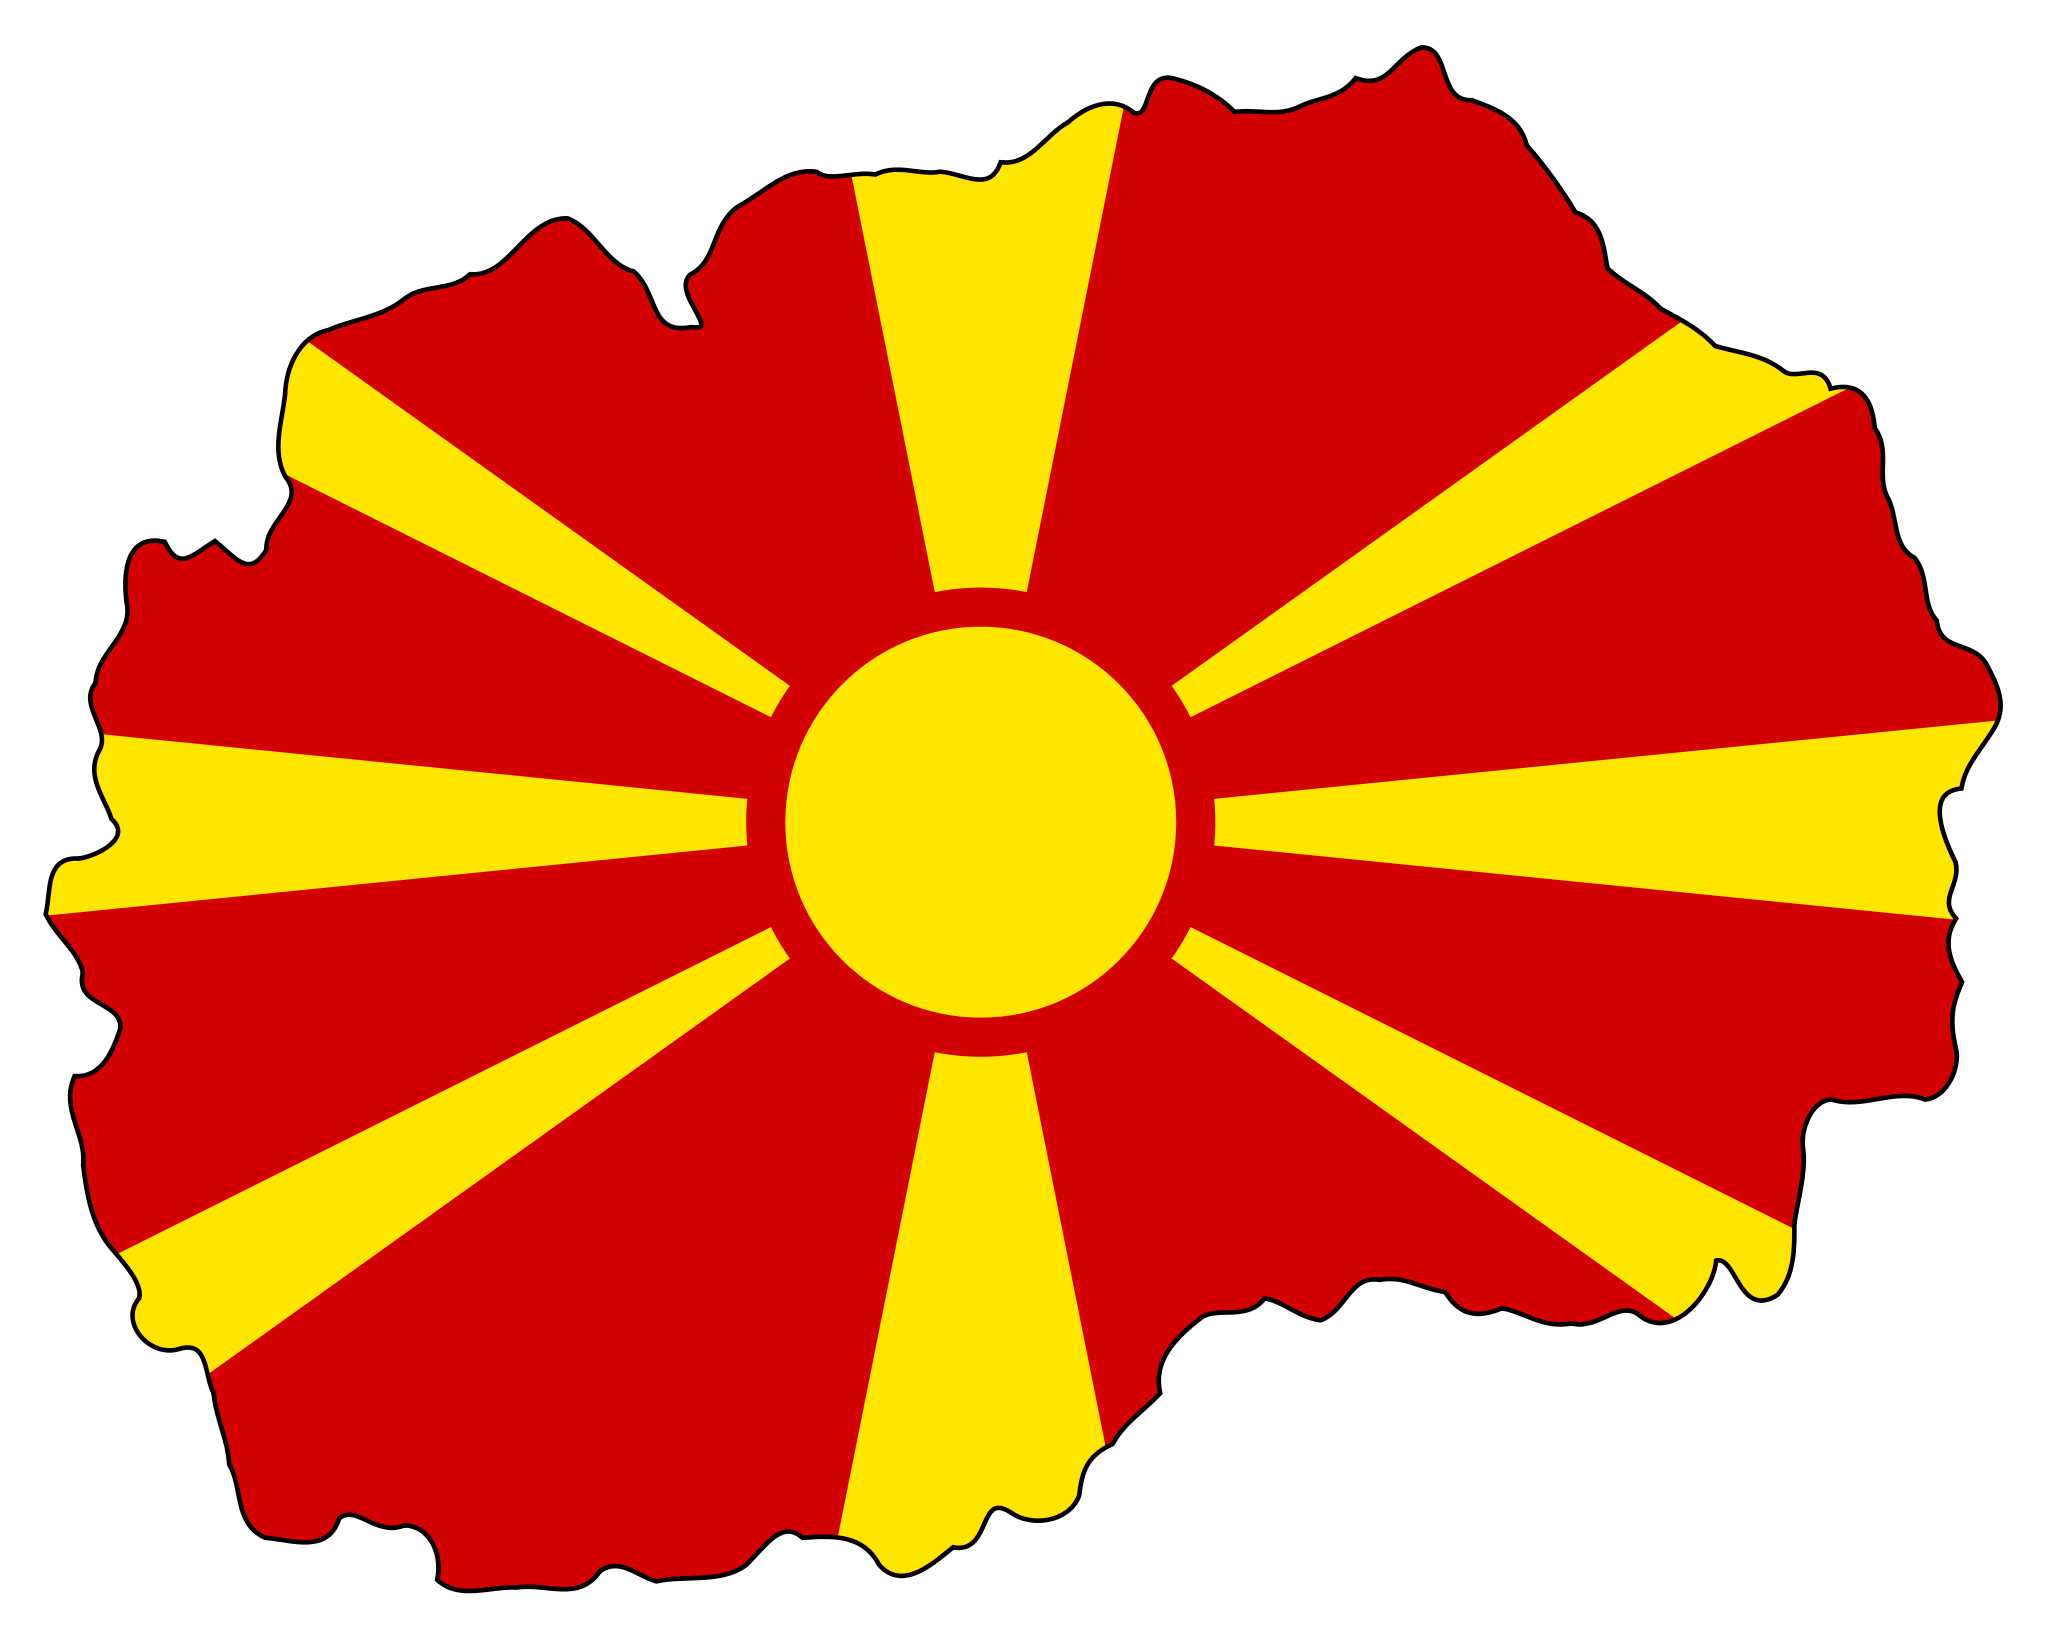 Macedonia Flag Map Mapsofnet Eur Greece Turkey Albania - Macedonia map quiz